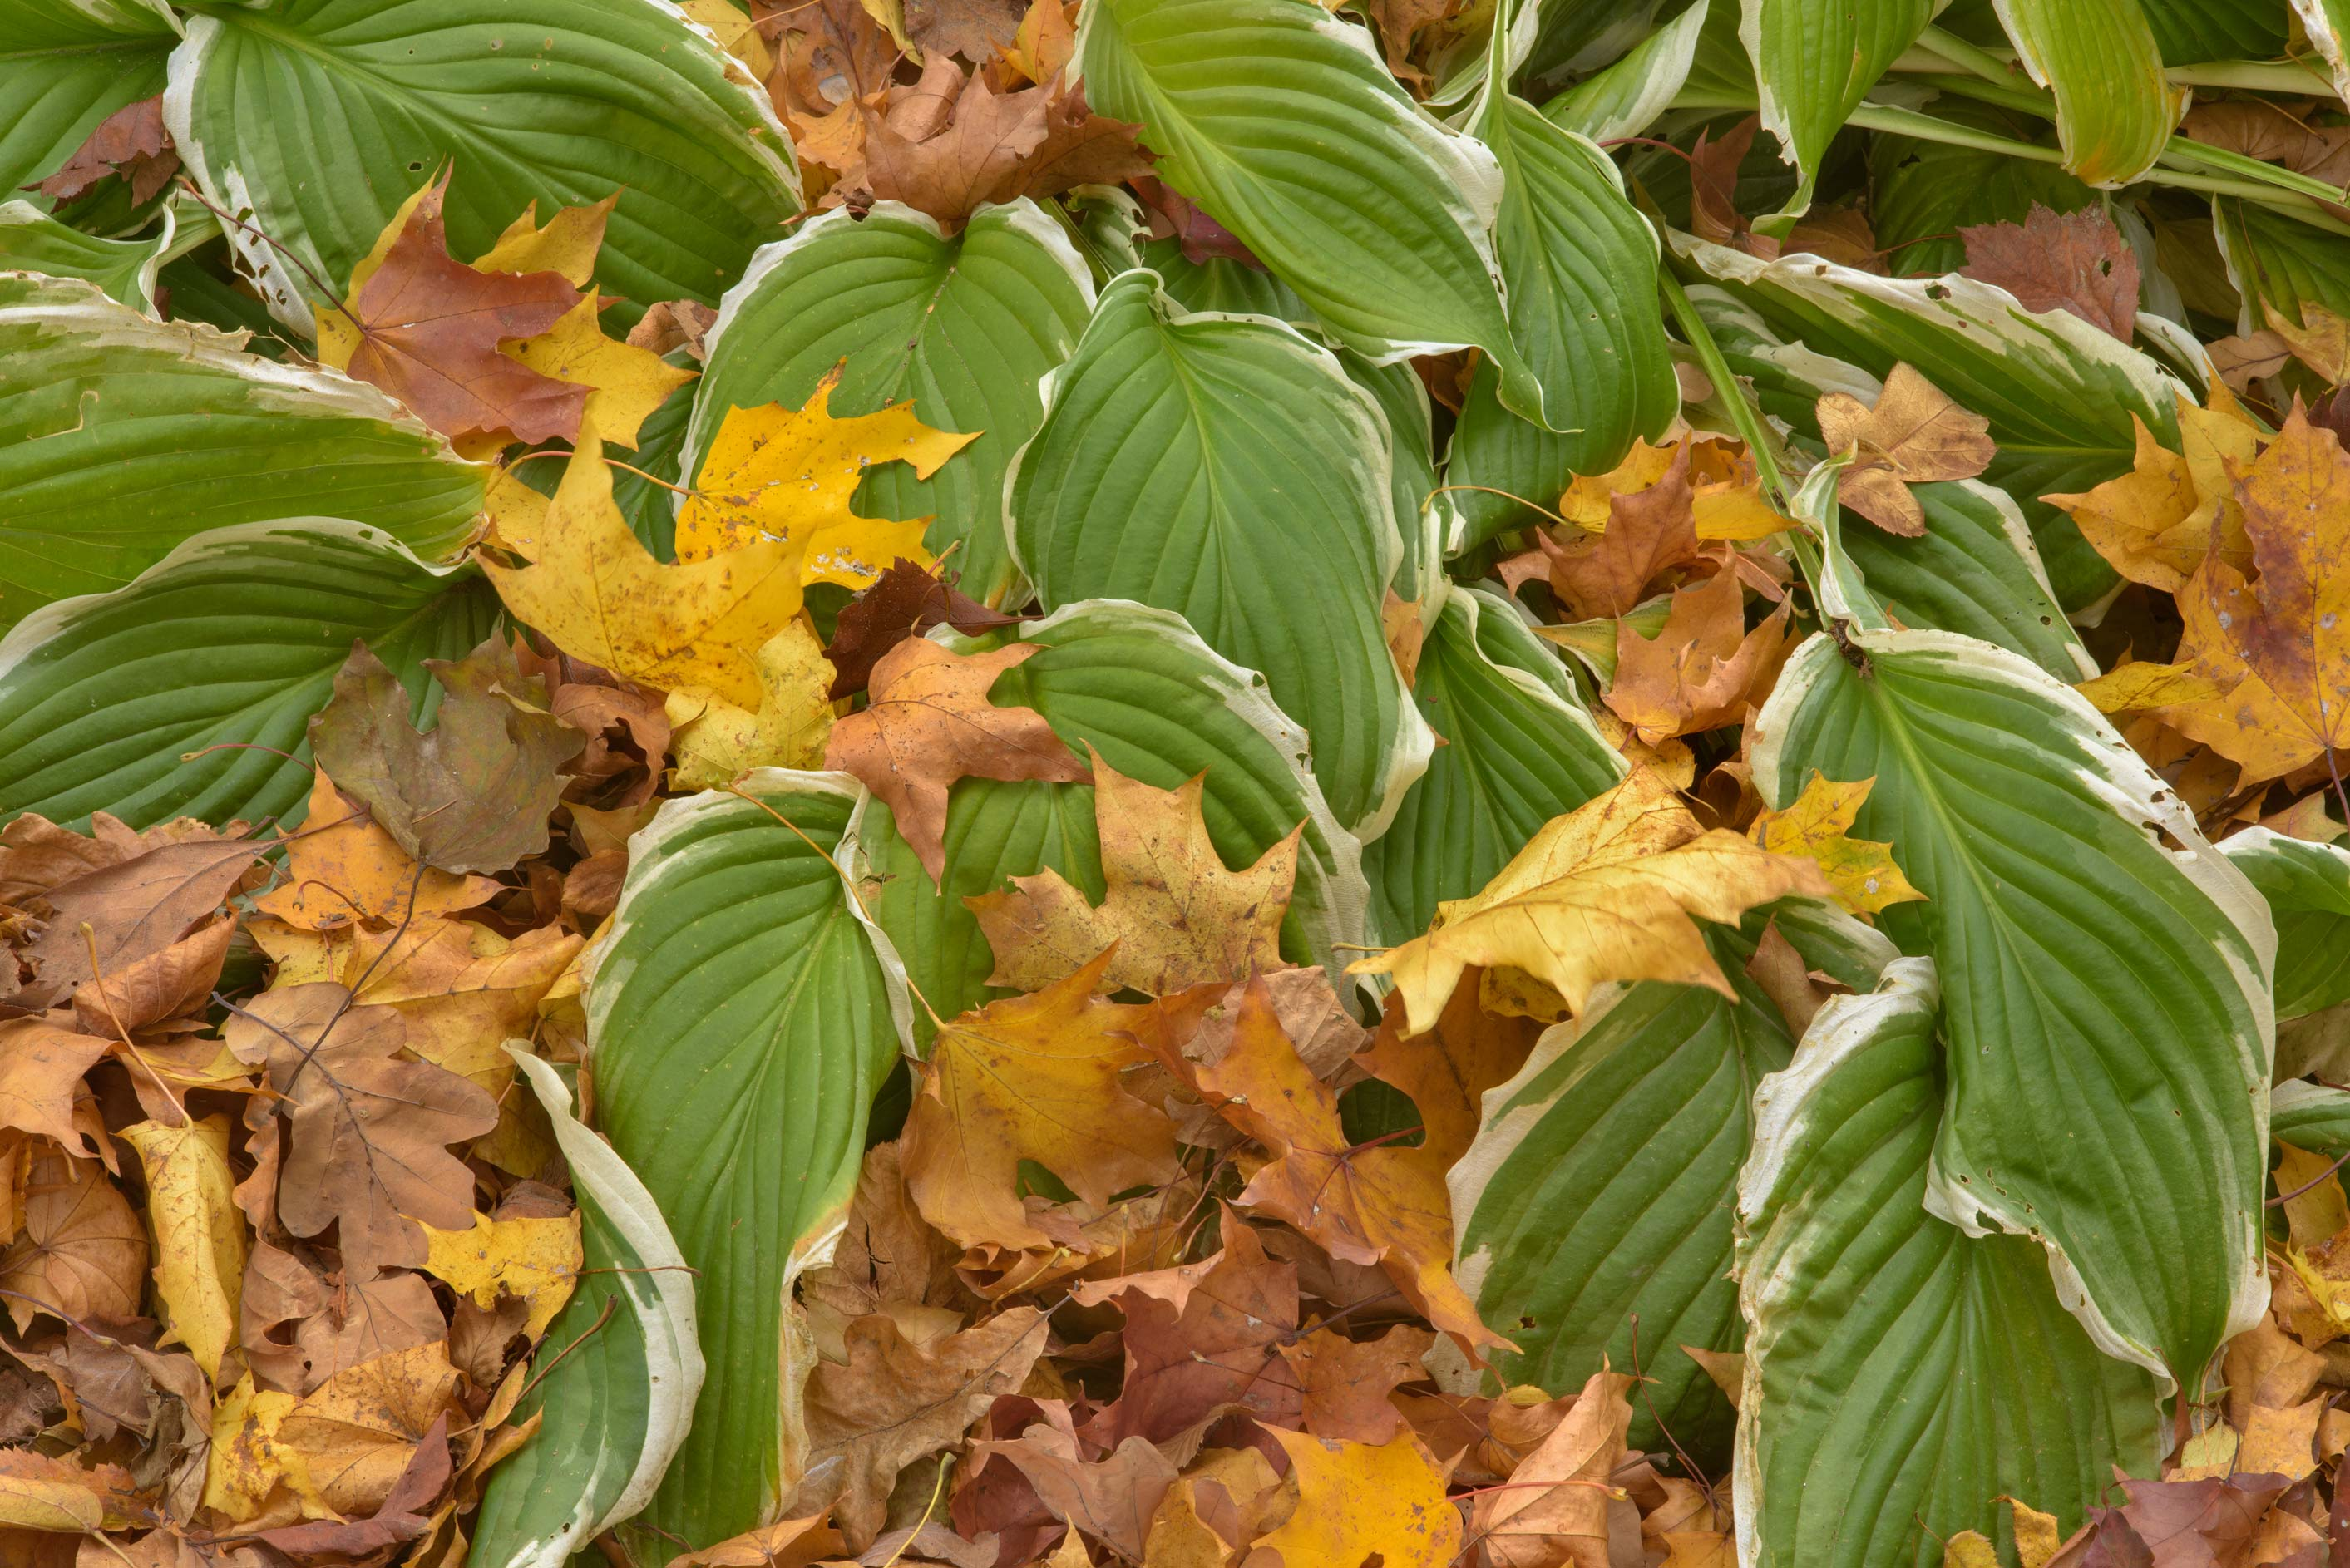 Leaves of plantain lily (hosta) in Botanic...Institute. St.Petersburg, Russia